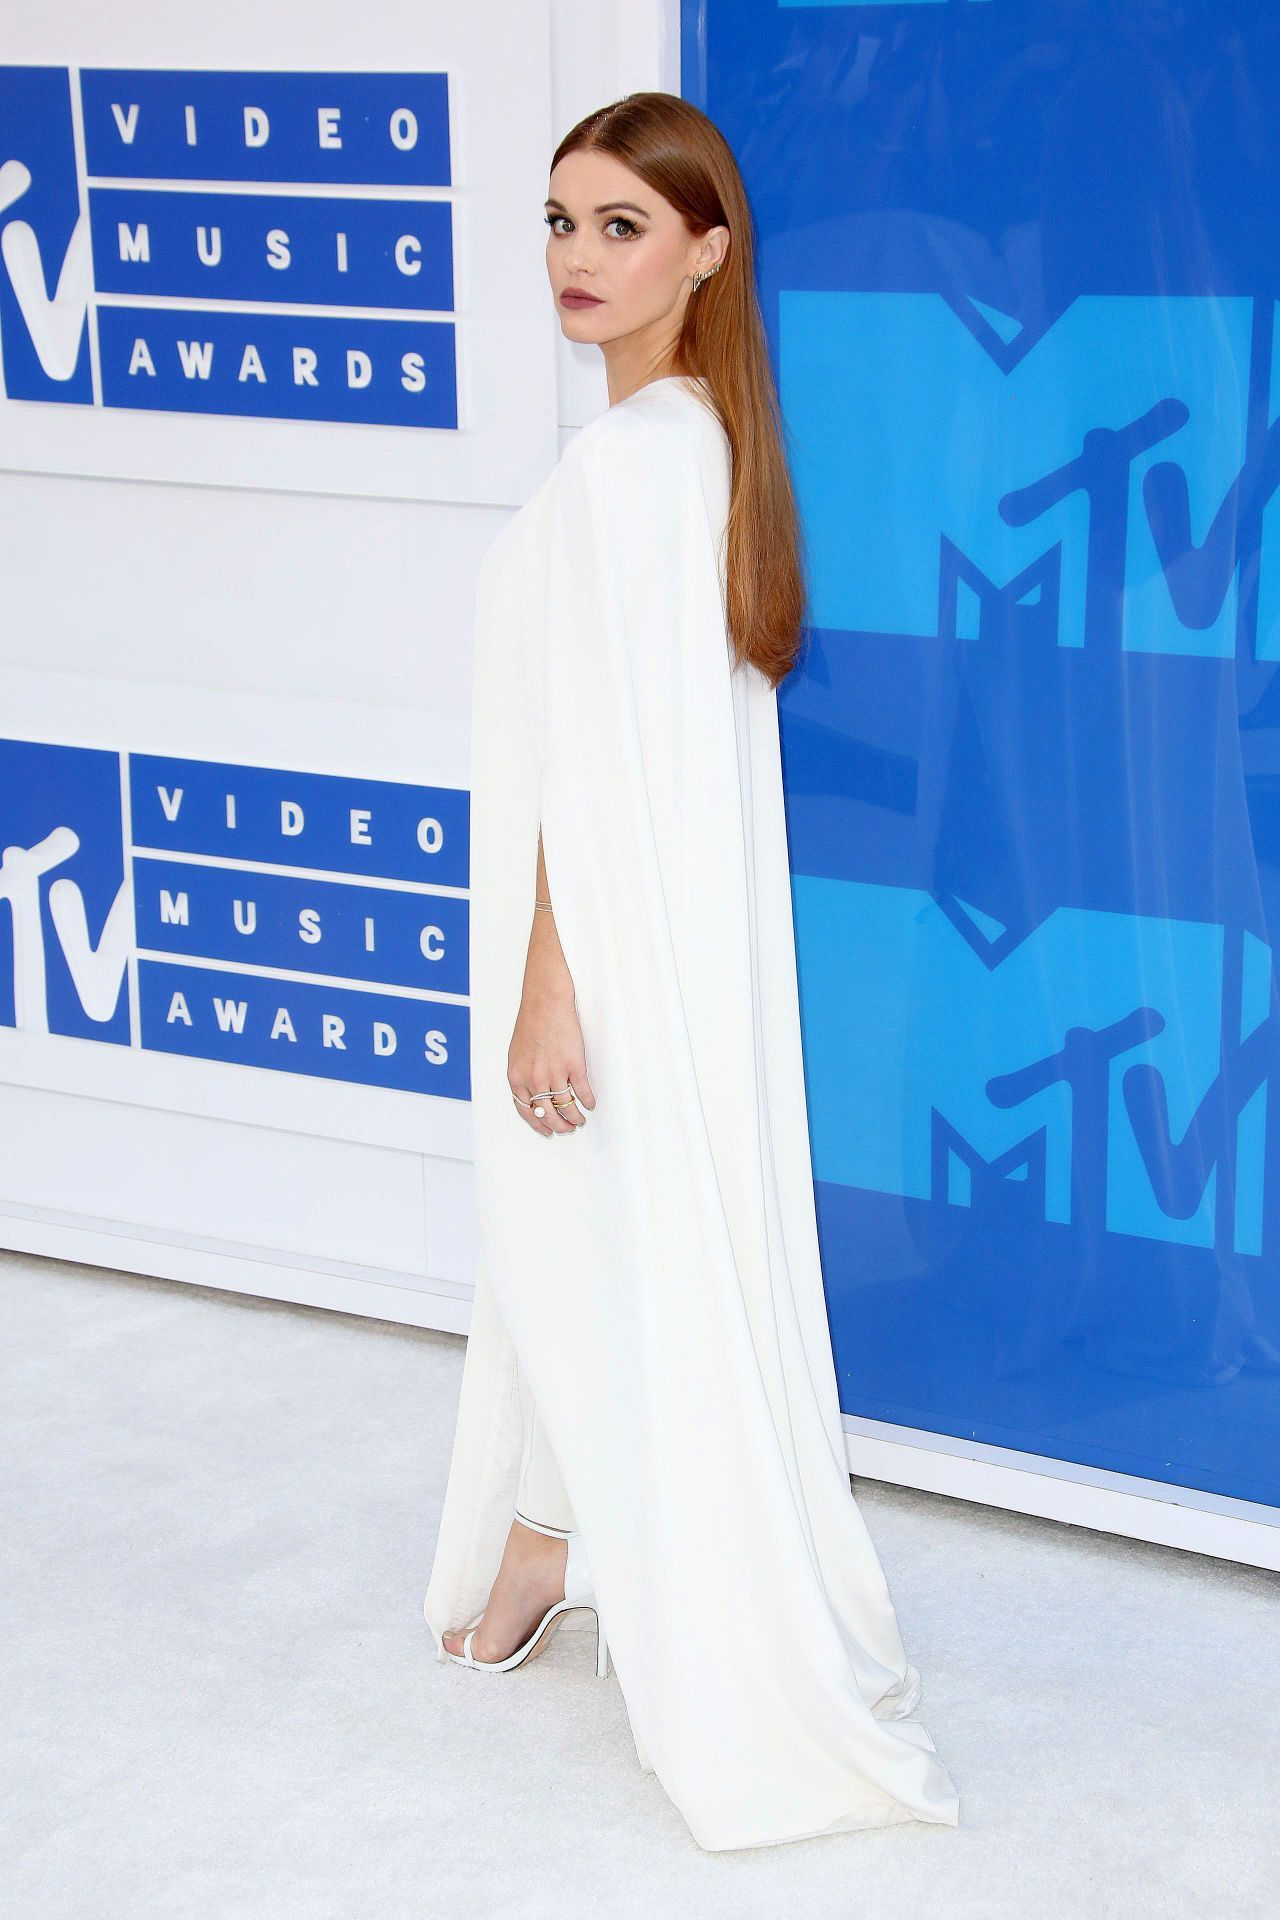 Holland Roden In Kayat At 2016 Mtv Video Music Awards In New York City